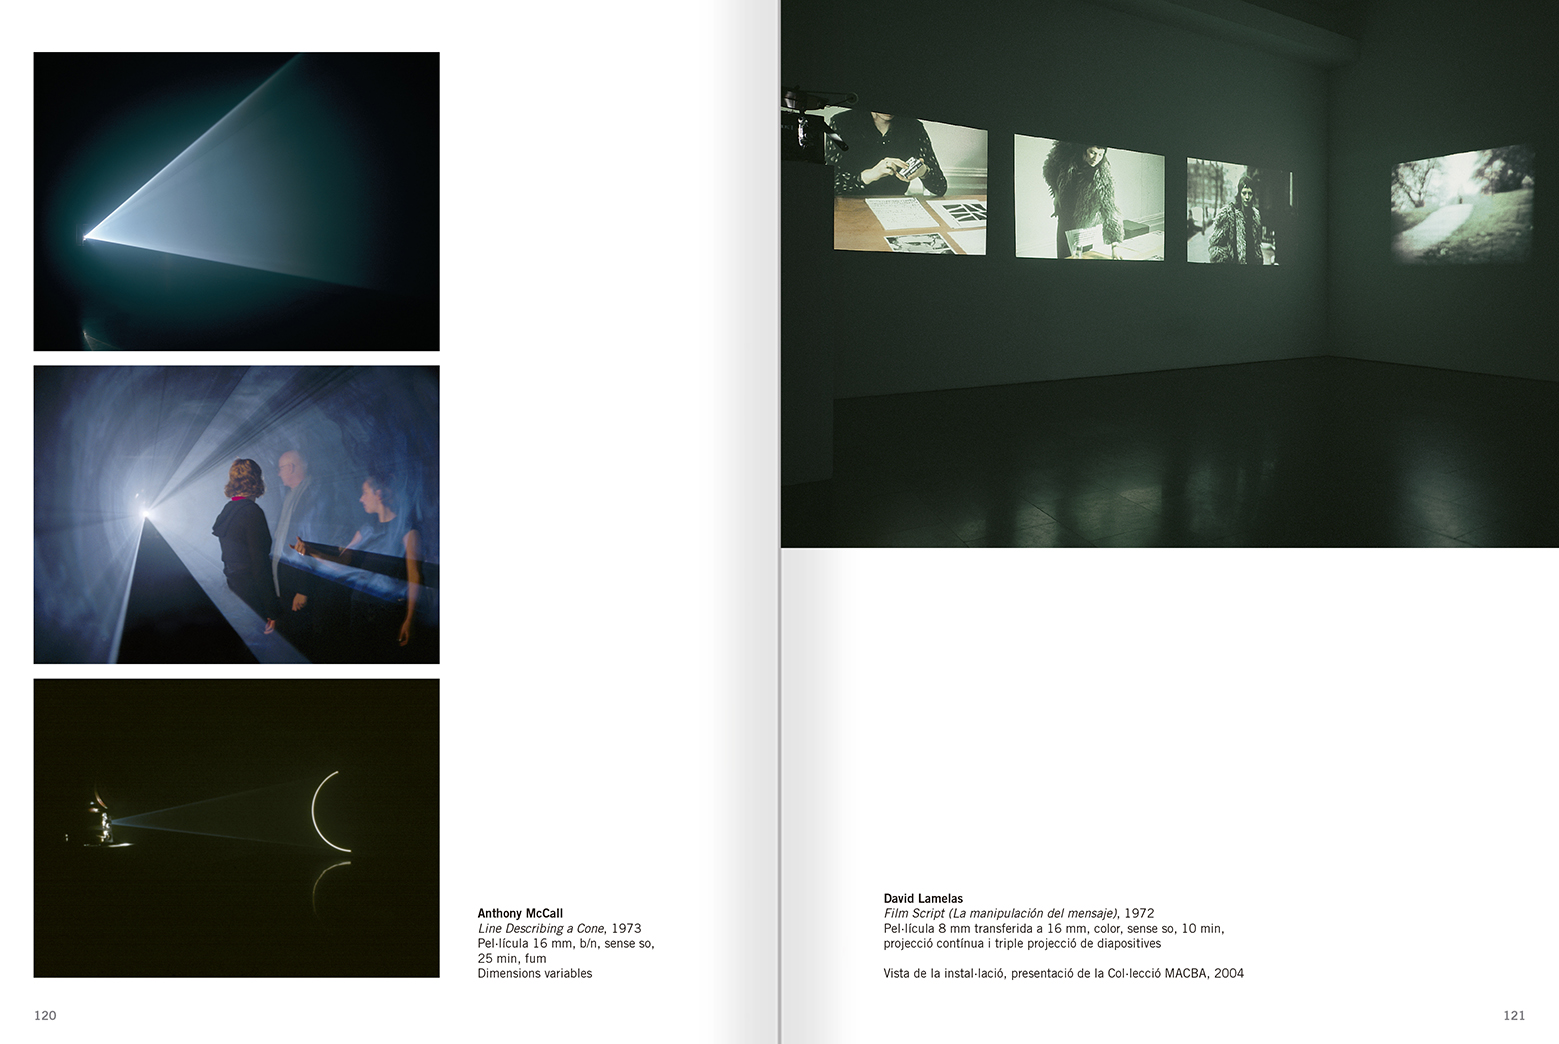 Selection from the catalogue 'Relational Objects. MACBA Collection 2002-07', pages 120 and 121